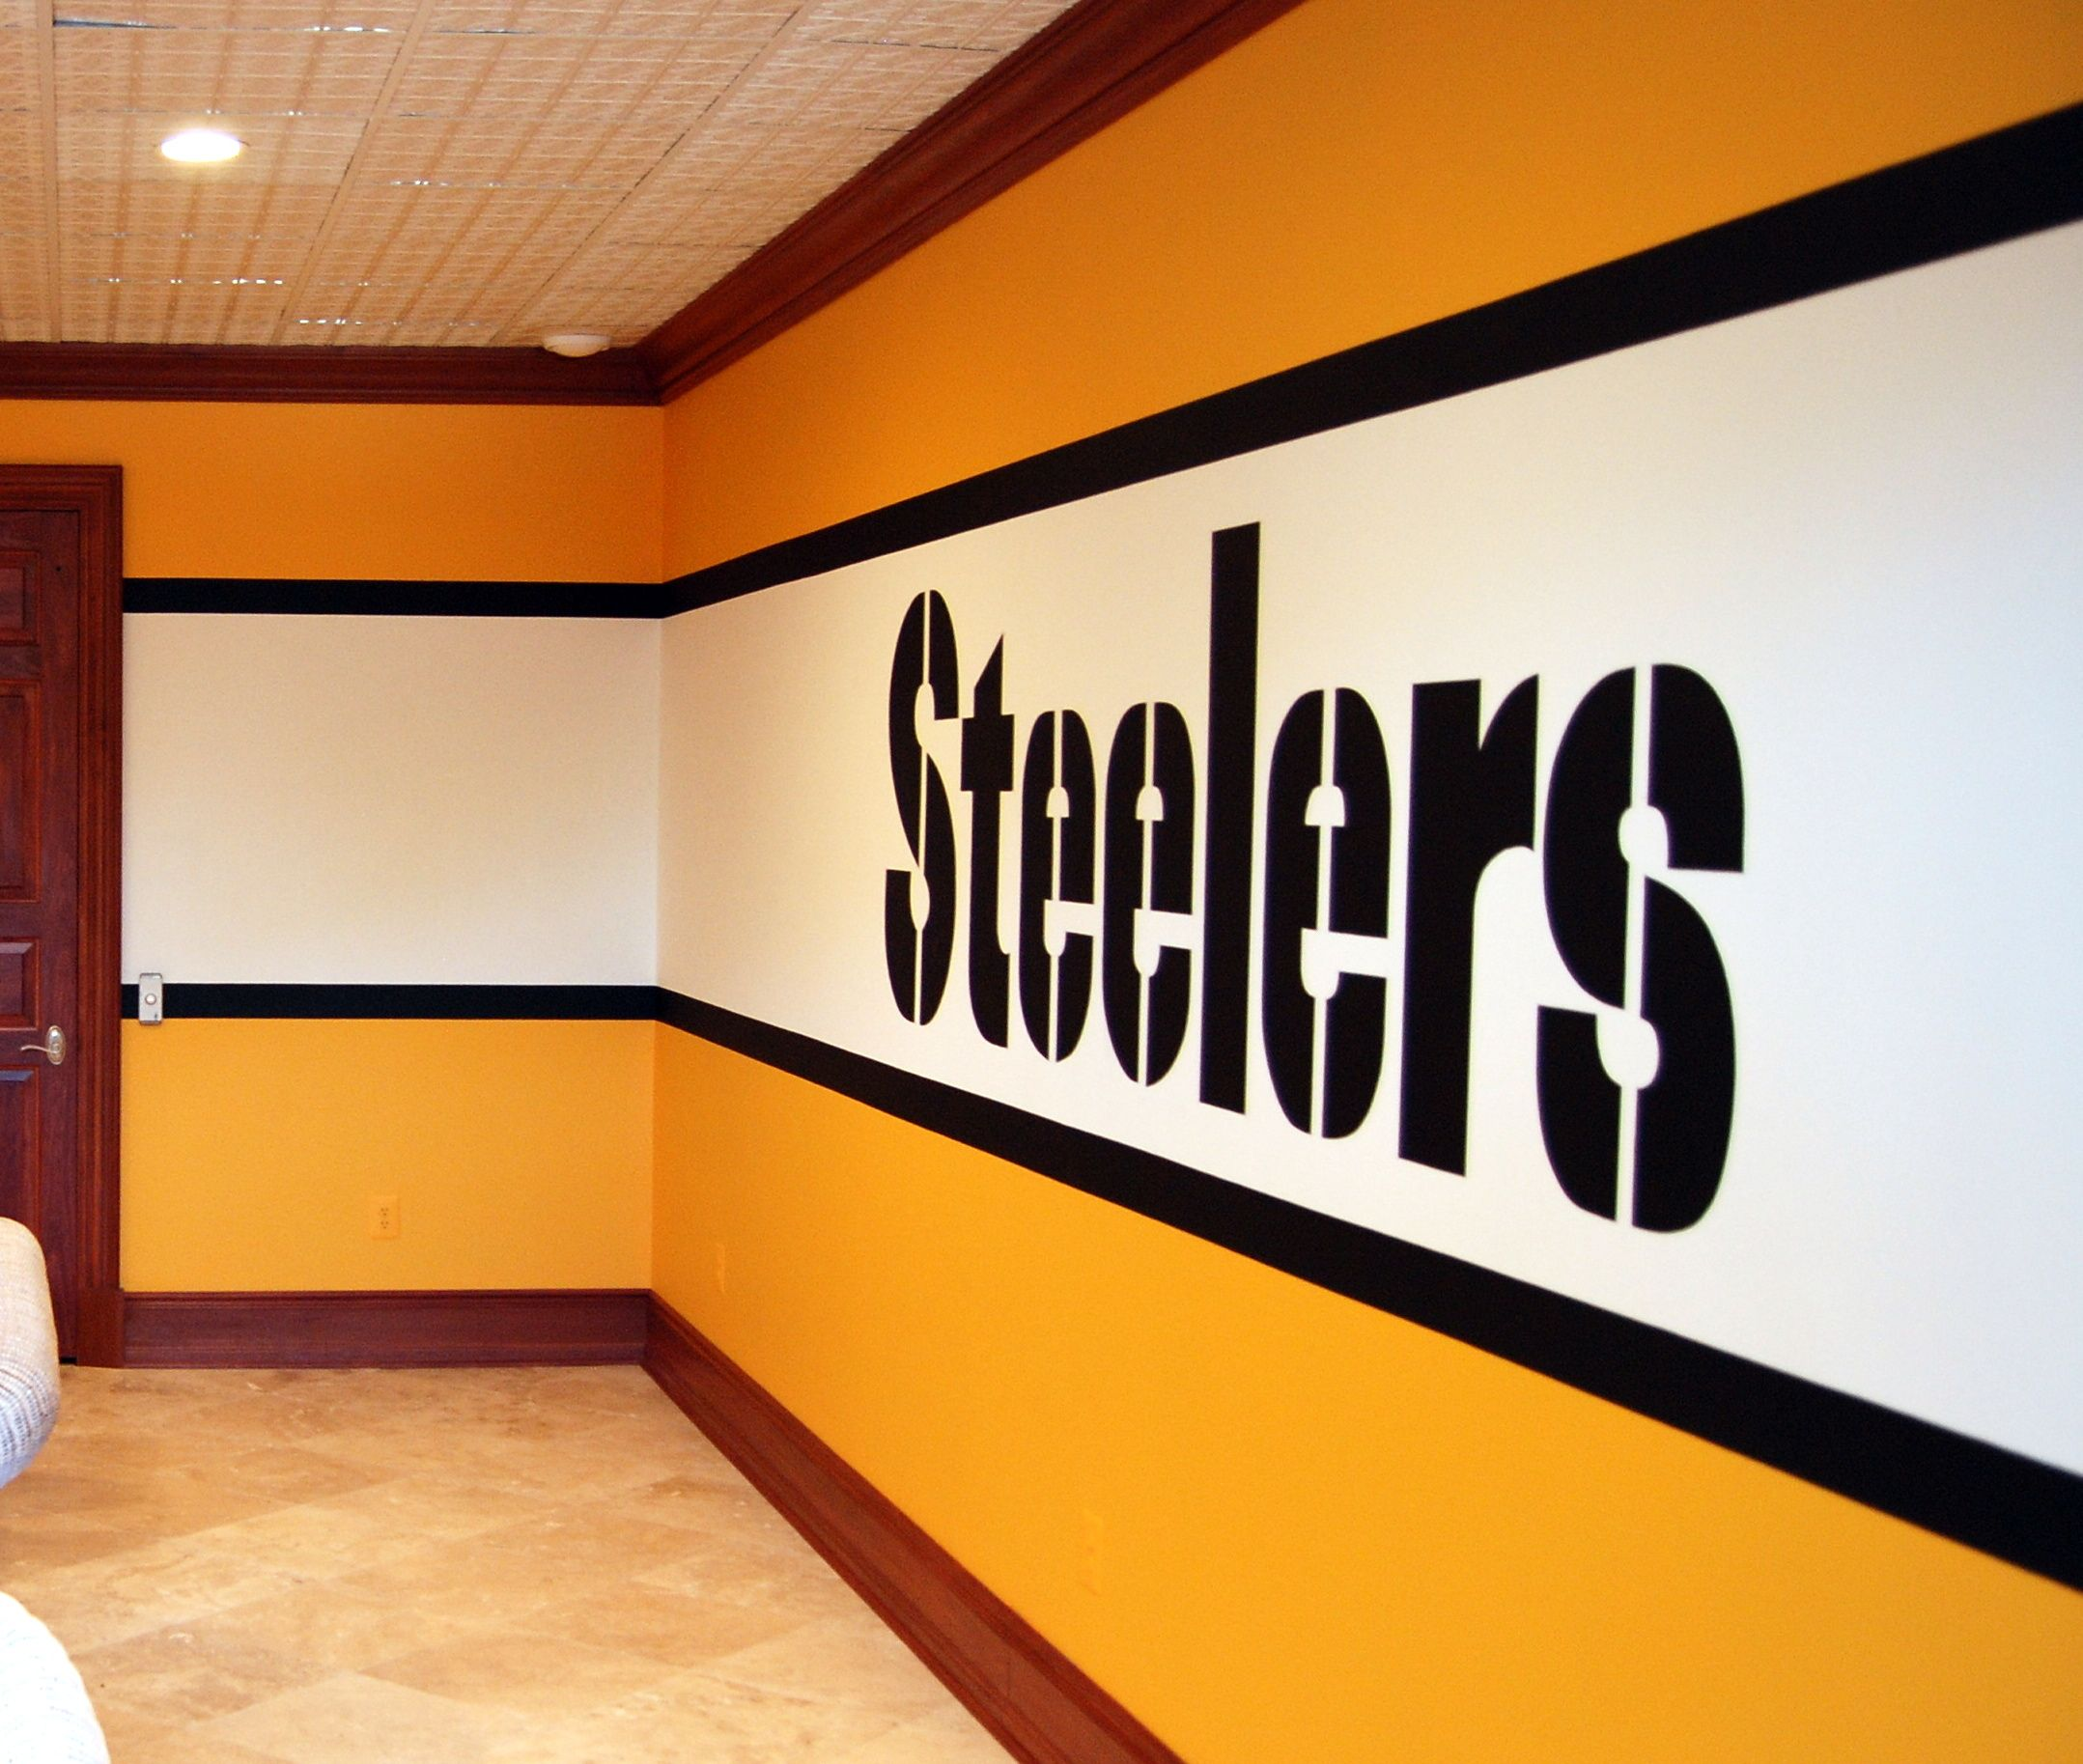 pittsburgh steelers 1970u0027s locker room mural by tom taylor of wow effects painted in a